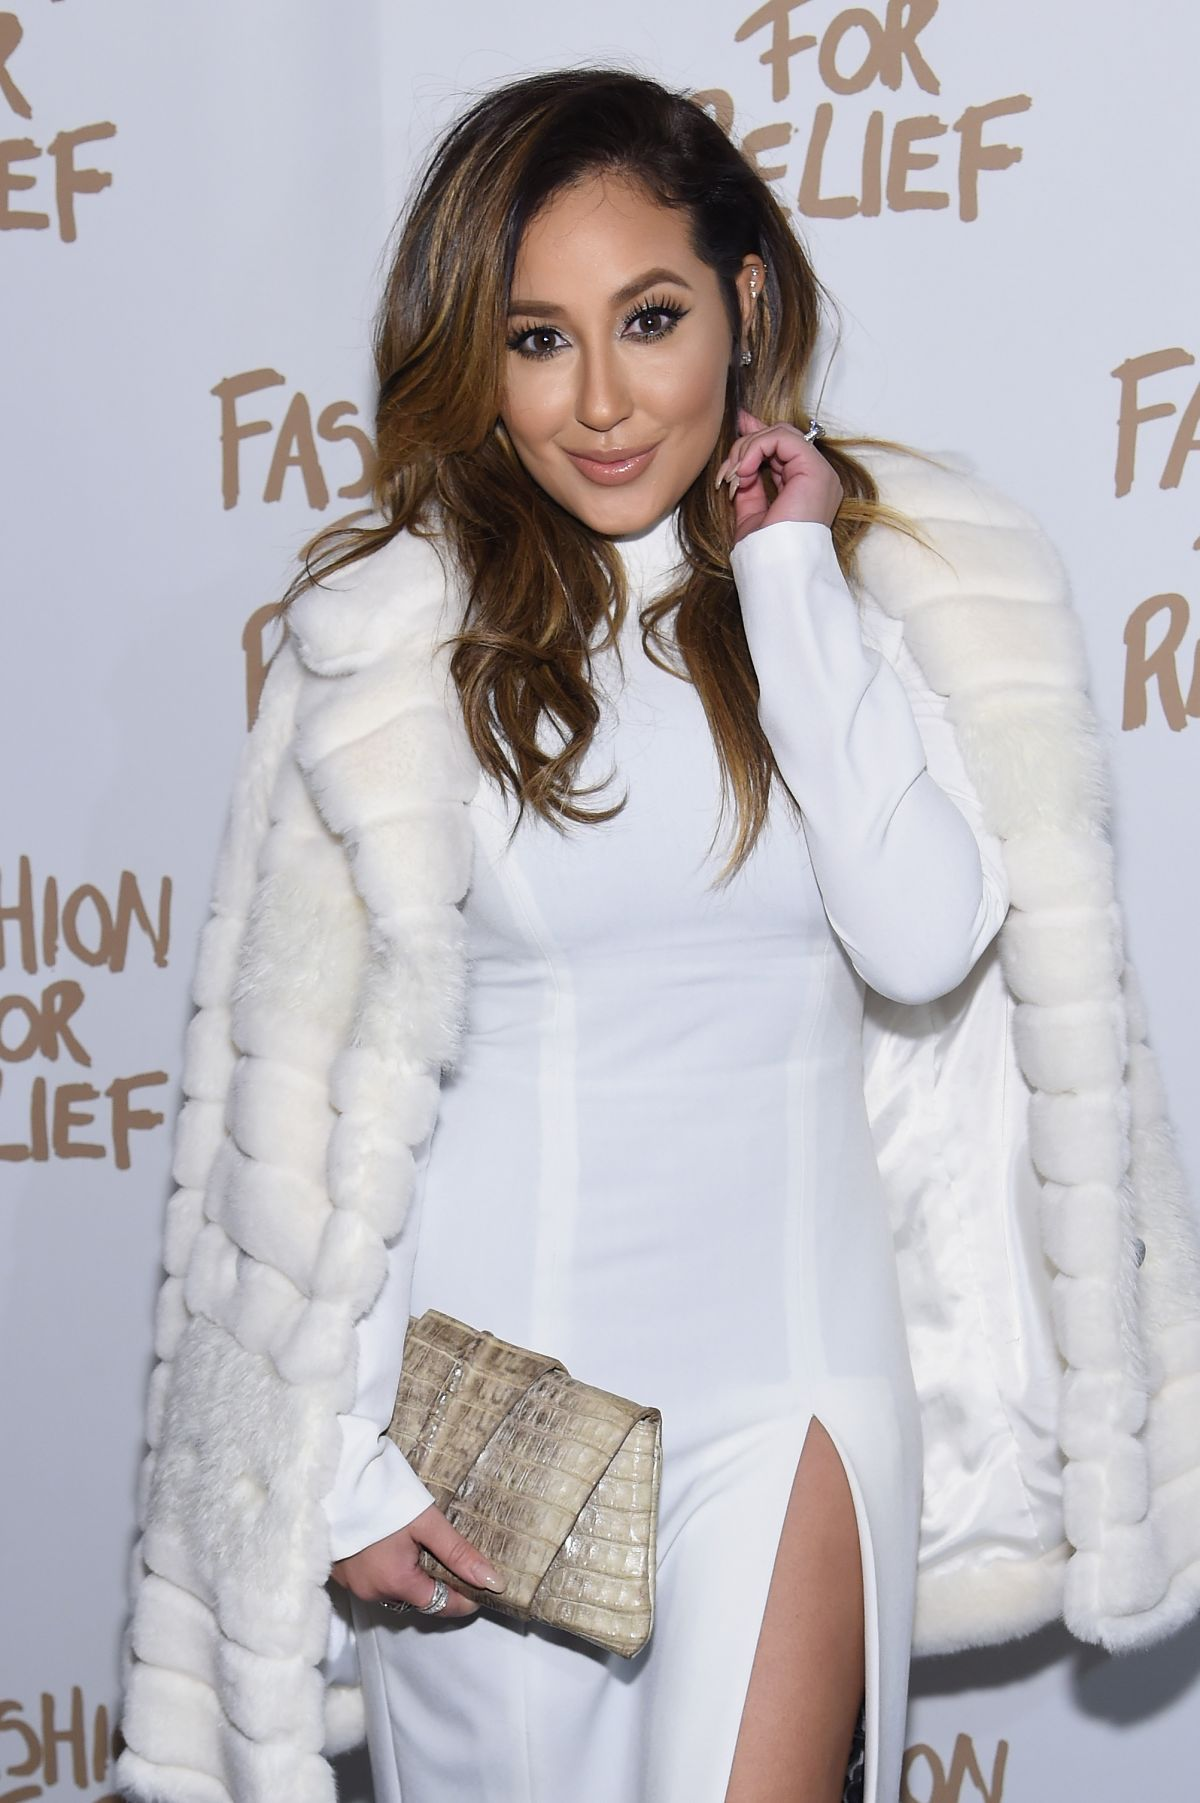 ADRIENNE BAILON at Naomi Campbell's Fashion for Relif Charity Fashion Show in New York